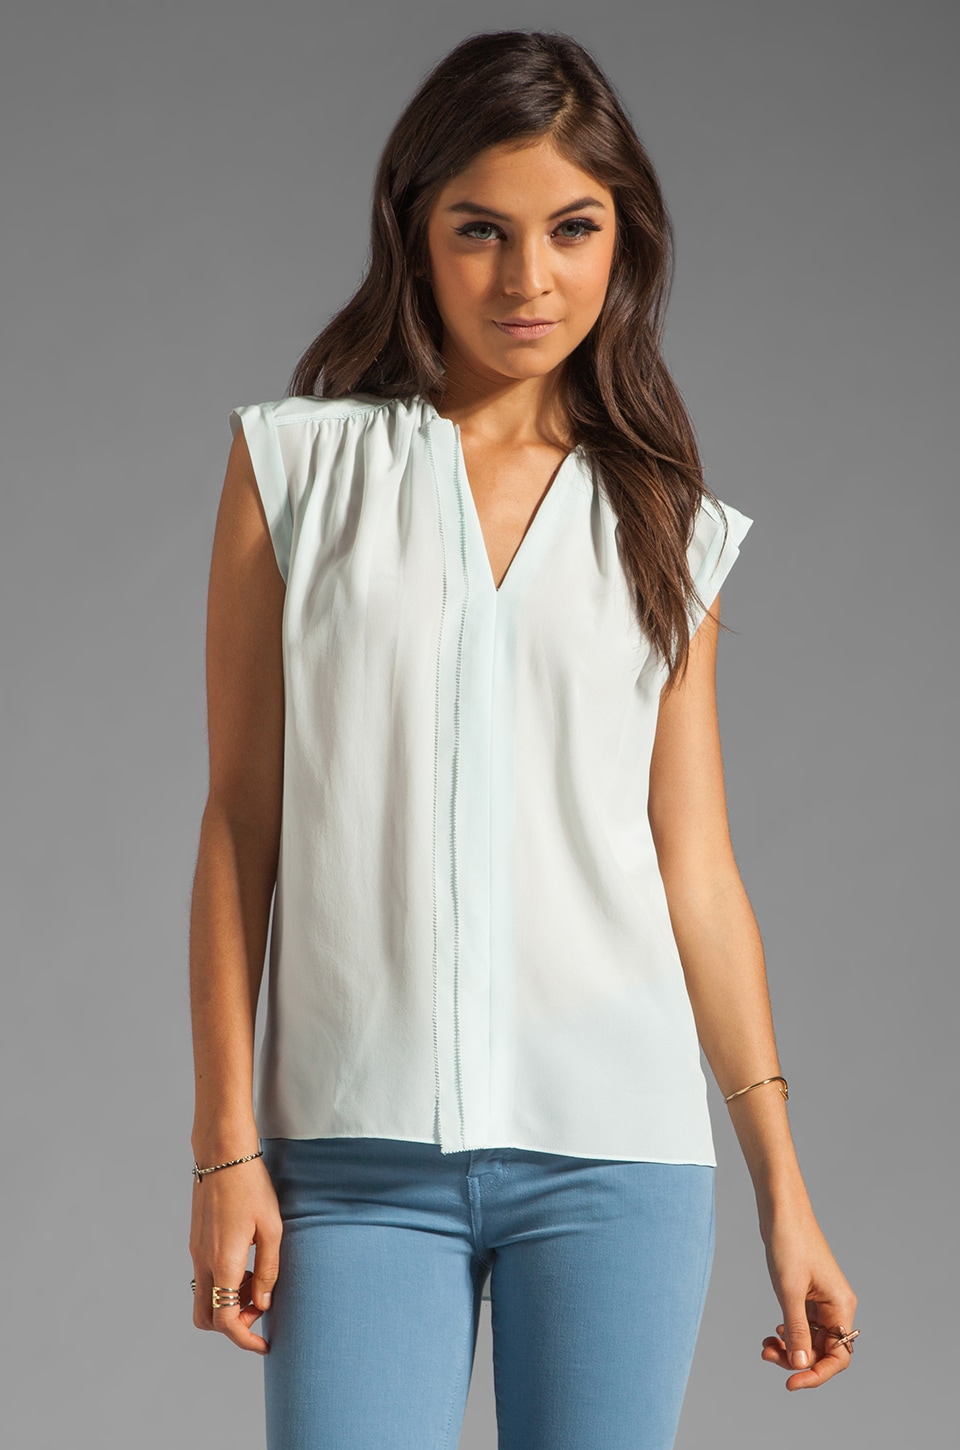 Rebecca Taylor Sleeveless Henley in Sky